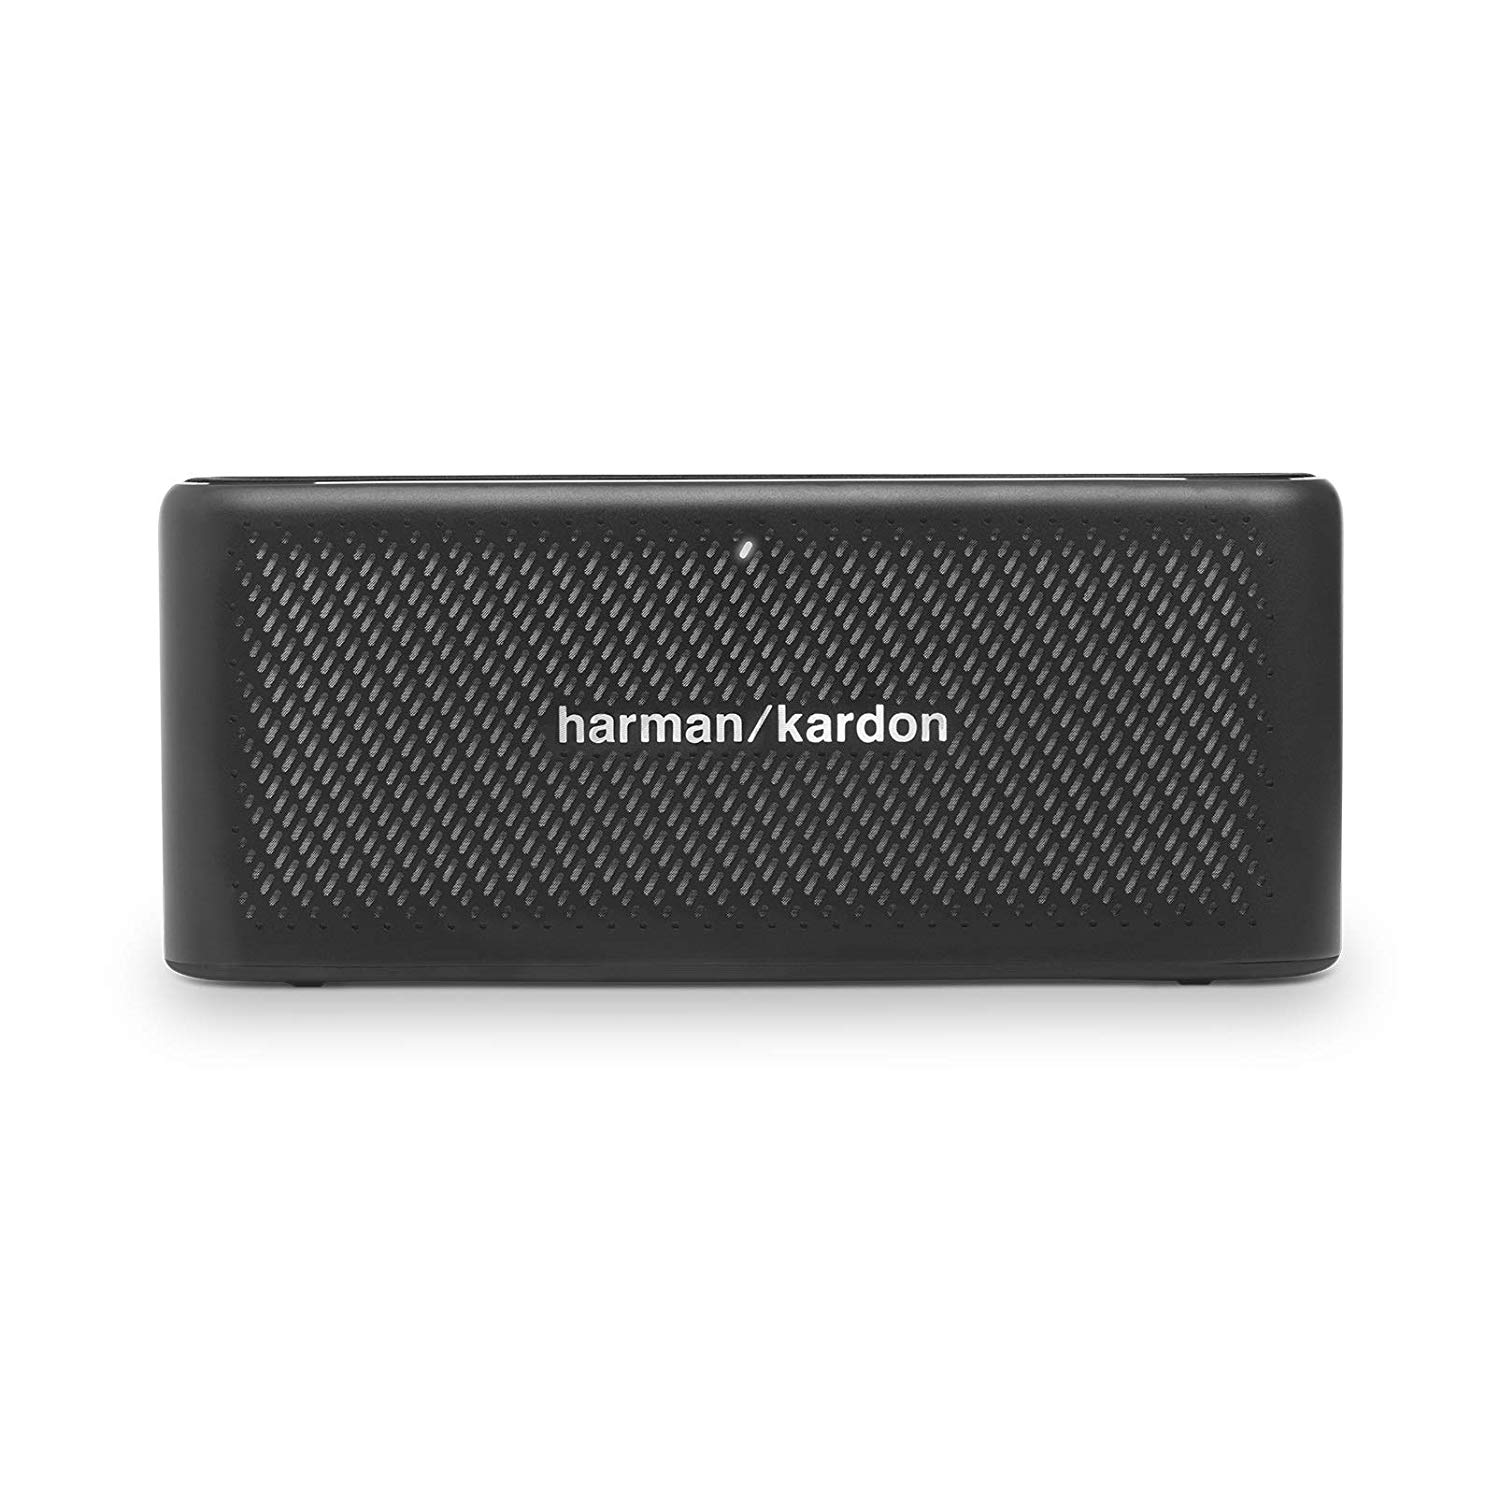 Buy Online Harman Kardon Hk Traveler Black Portable Bluetooth Go Play Mini Speaker With Microphone At Cheap Price In India 24eshop